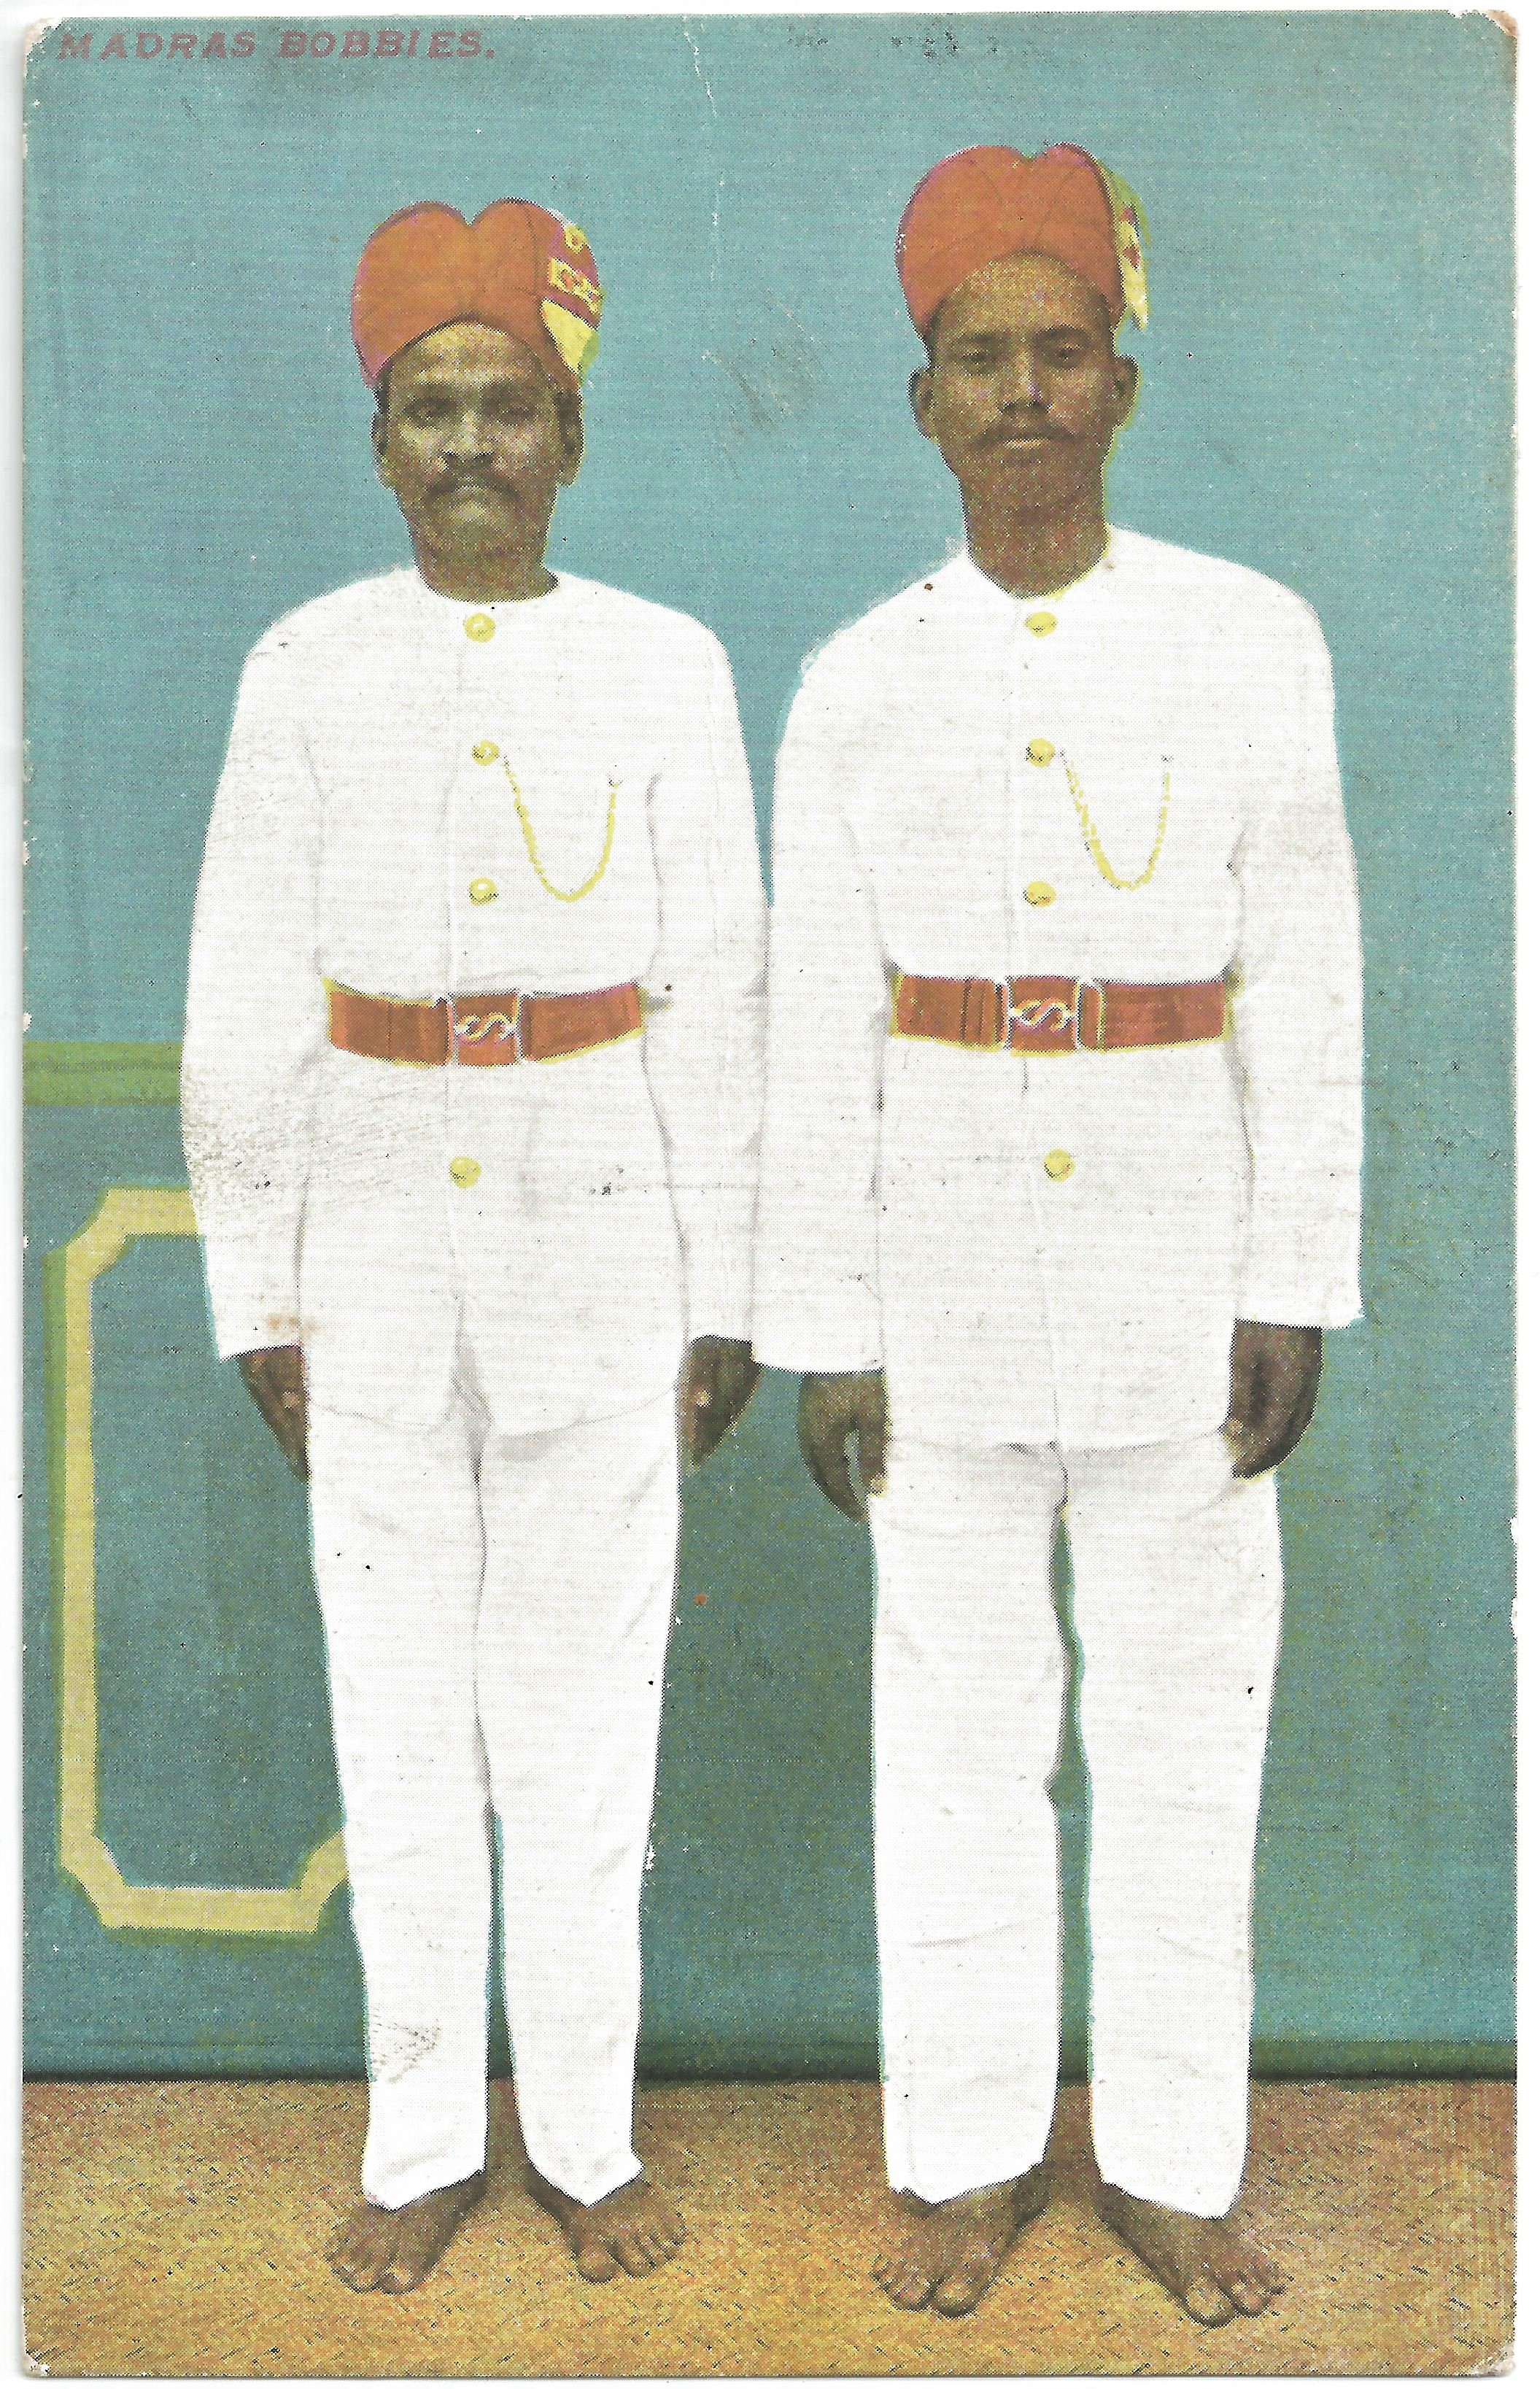 """Madras Bobbies"". Publisher unknown. Early 20th century."